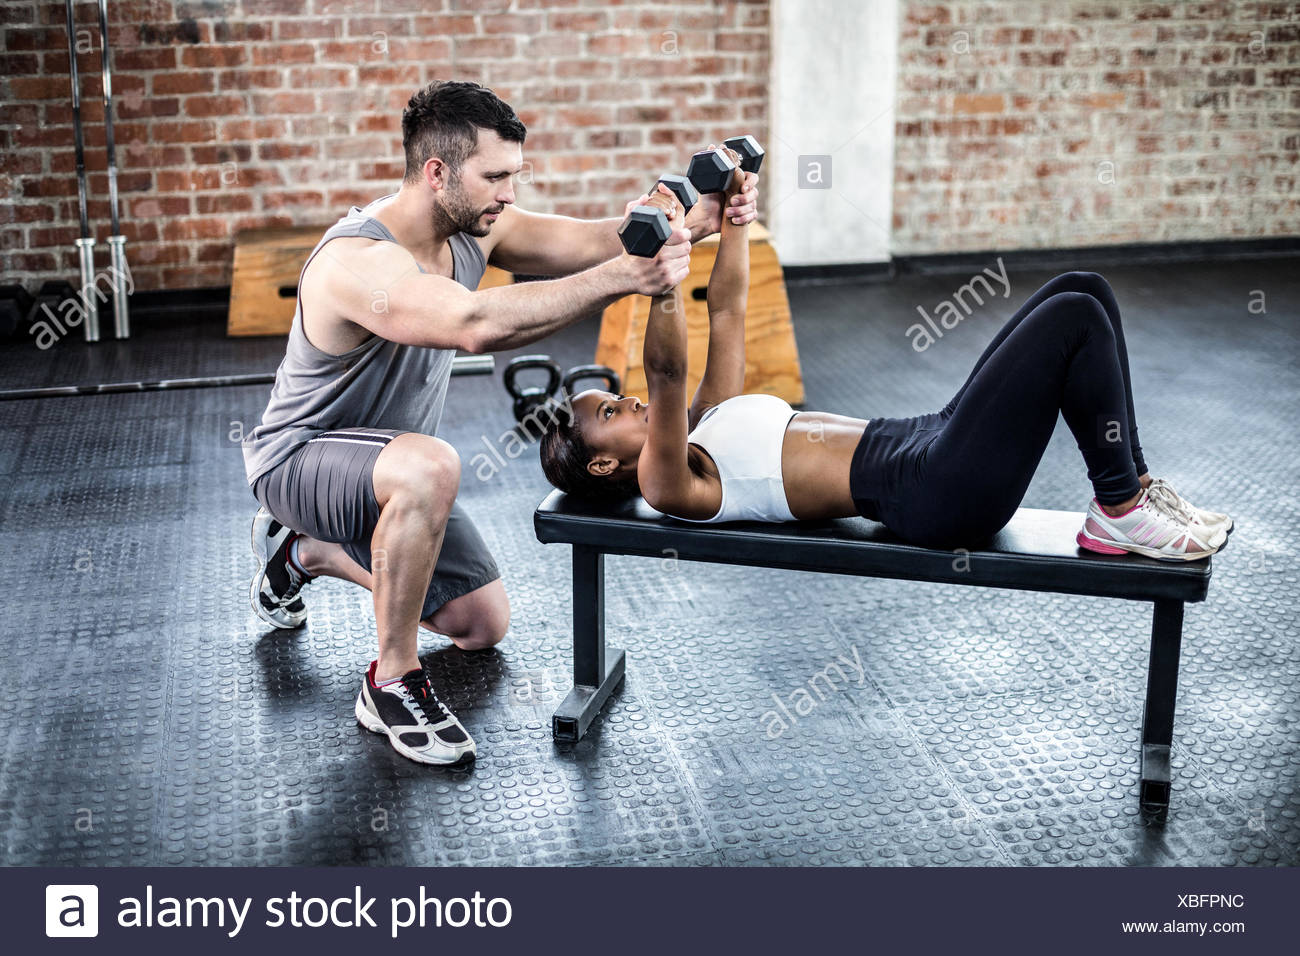 Personal trainer working with client holding dumbbell - Stock Image